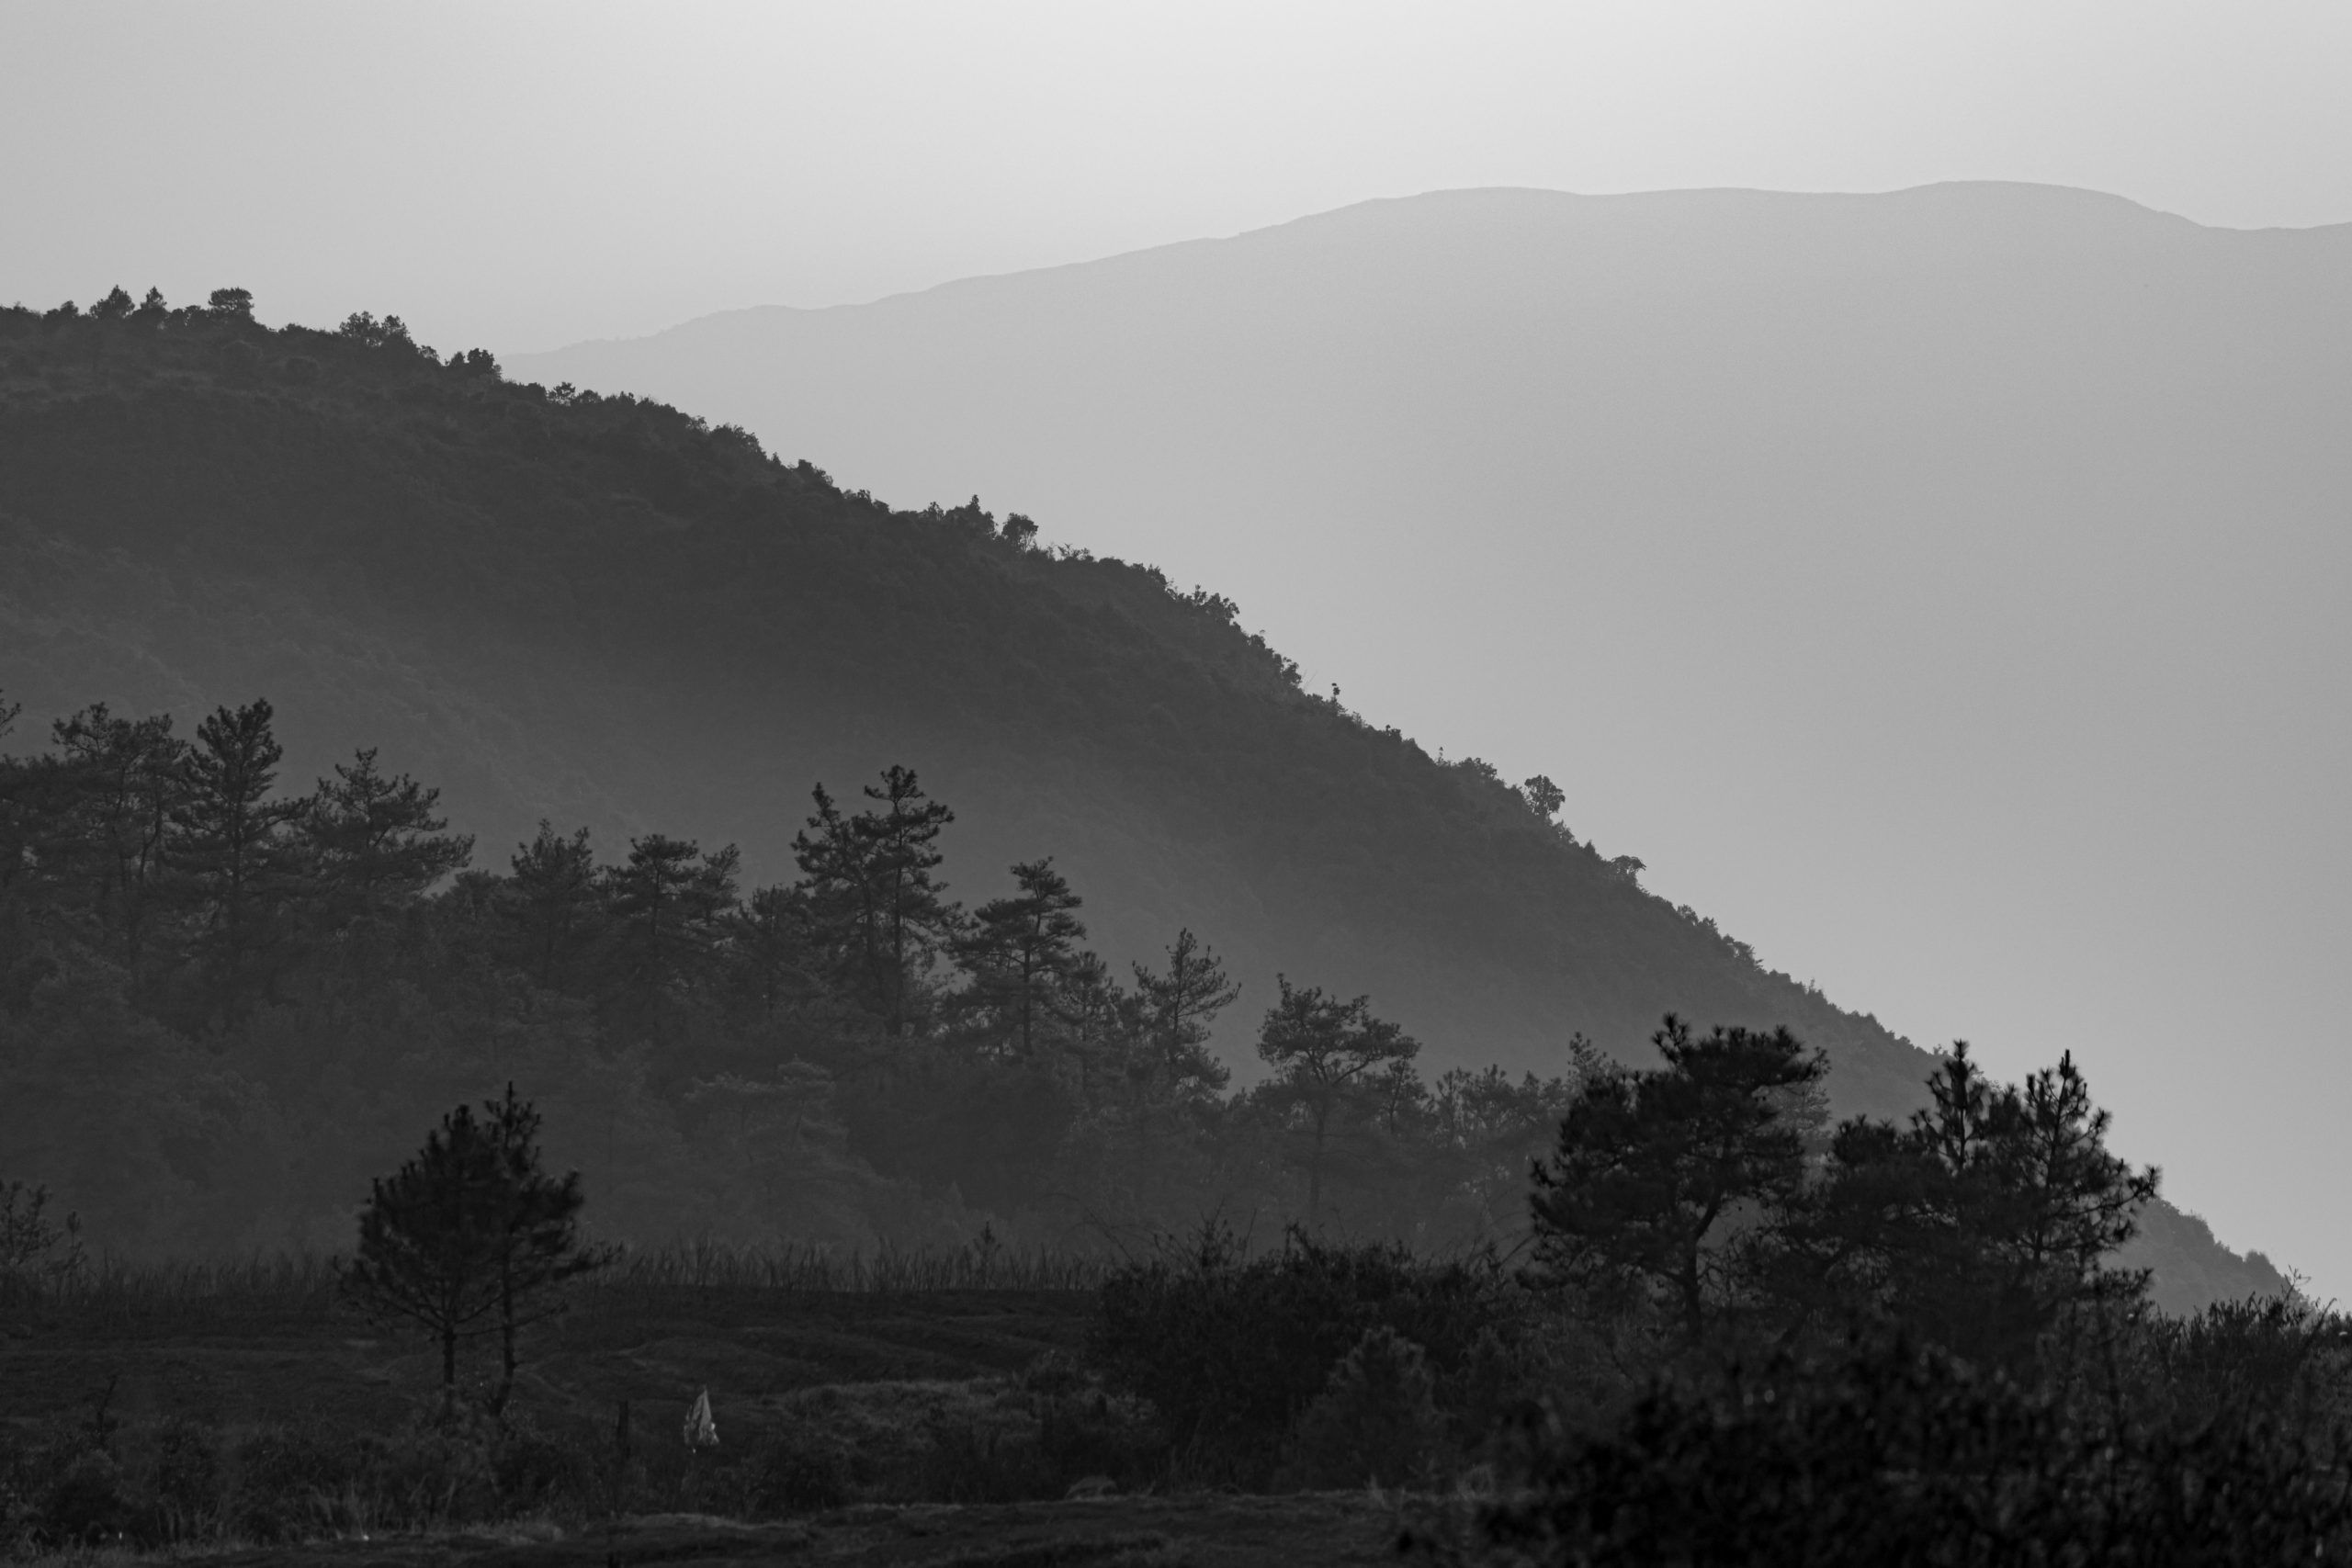 Black and white landscape of mountains